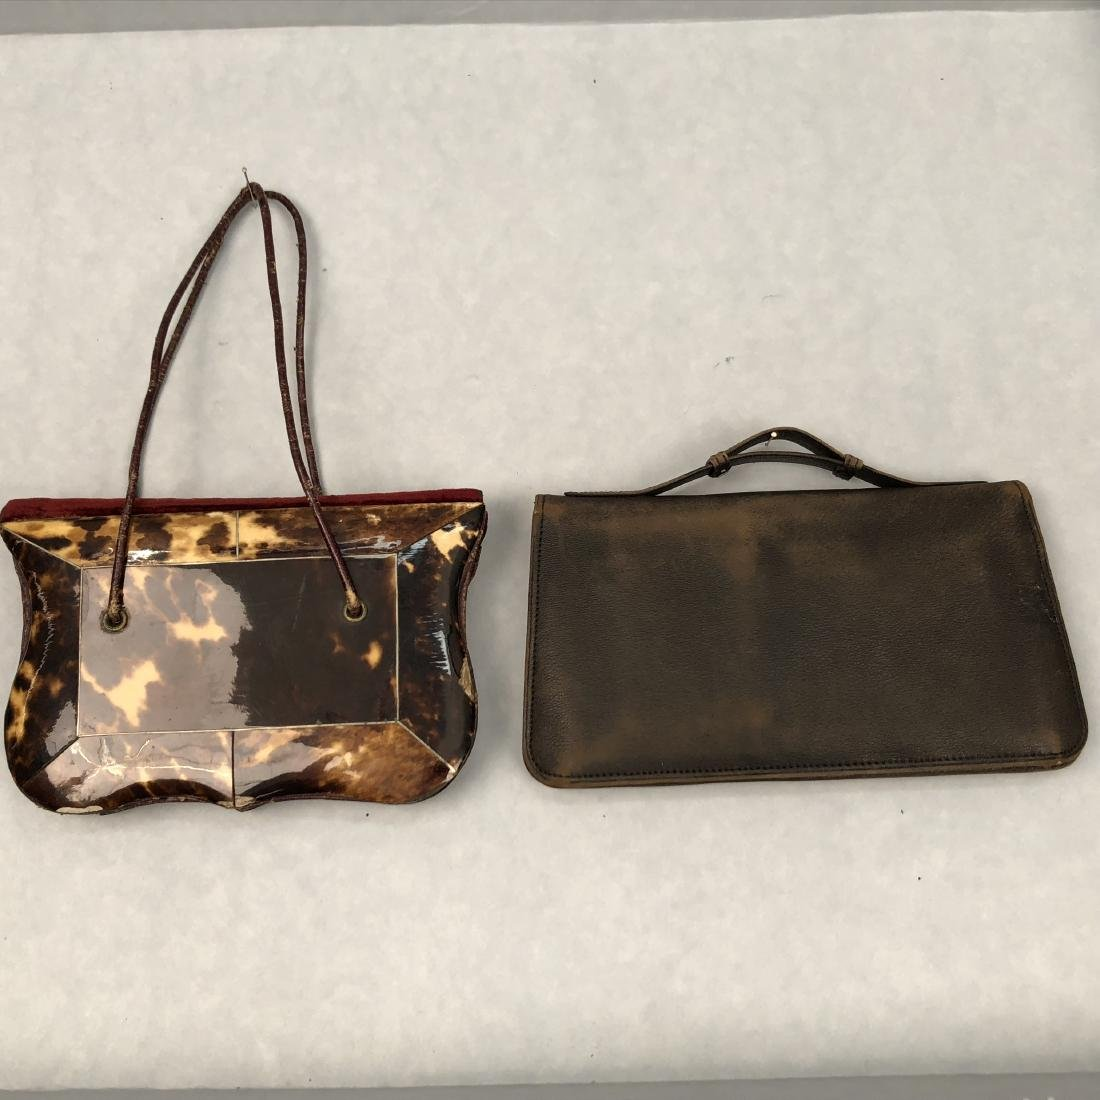 SHELL and IVORY ENVELOPE PURSES, c. 1830 and 1920s - 4